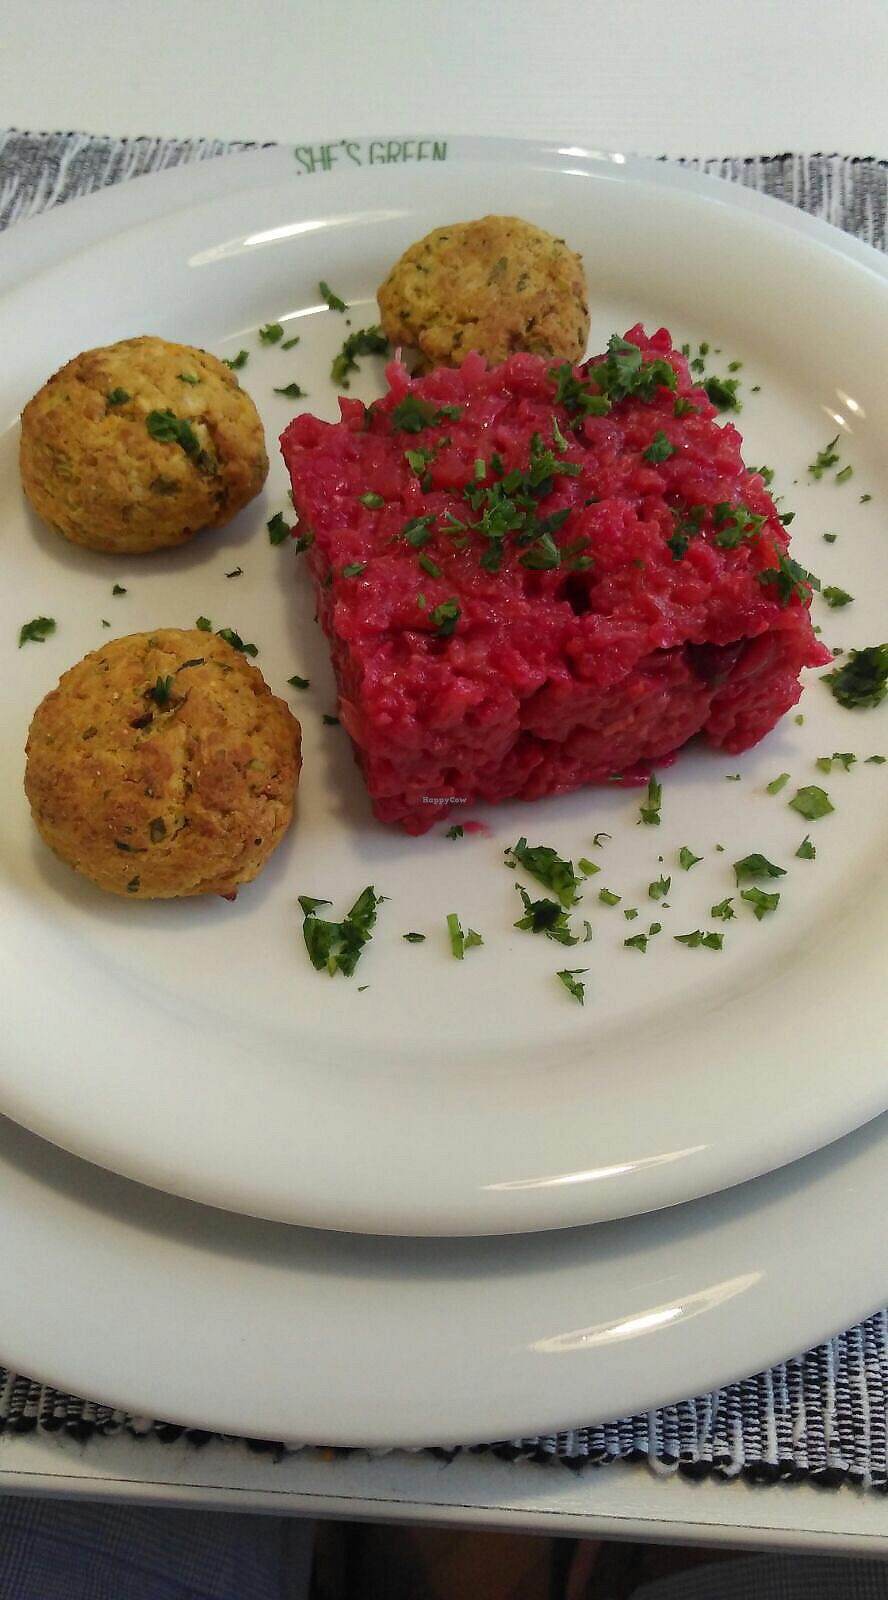 """Photo of She's Green  by <a href=""""/members/profile/RazZor"""">RazZor</a> <br/>beetroot risotto and chickpeas paddies <br/> July 18, 2017  - <a href='/contact/abuse/image/95077/281889'>Report</a>"""